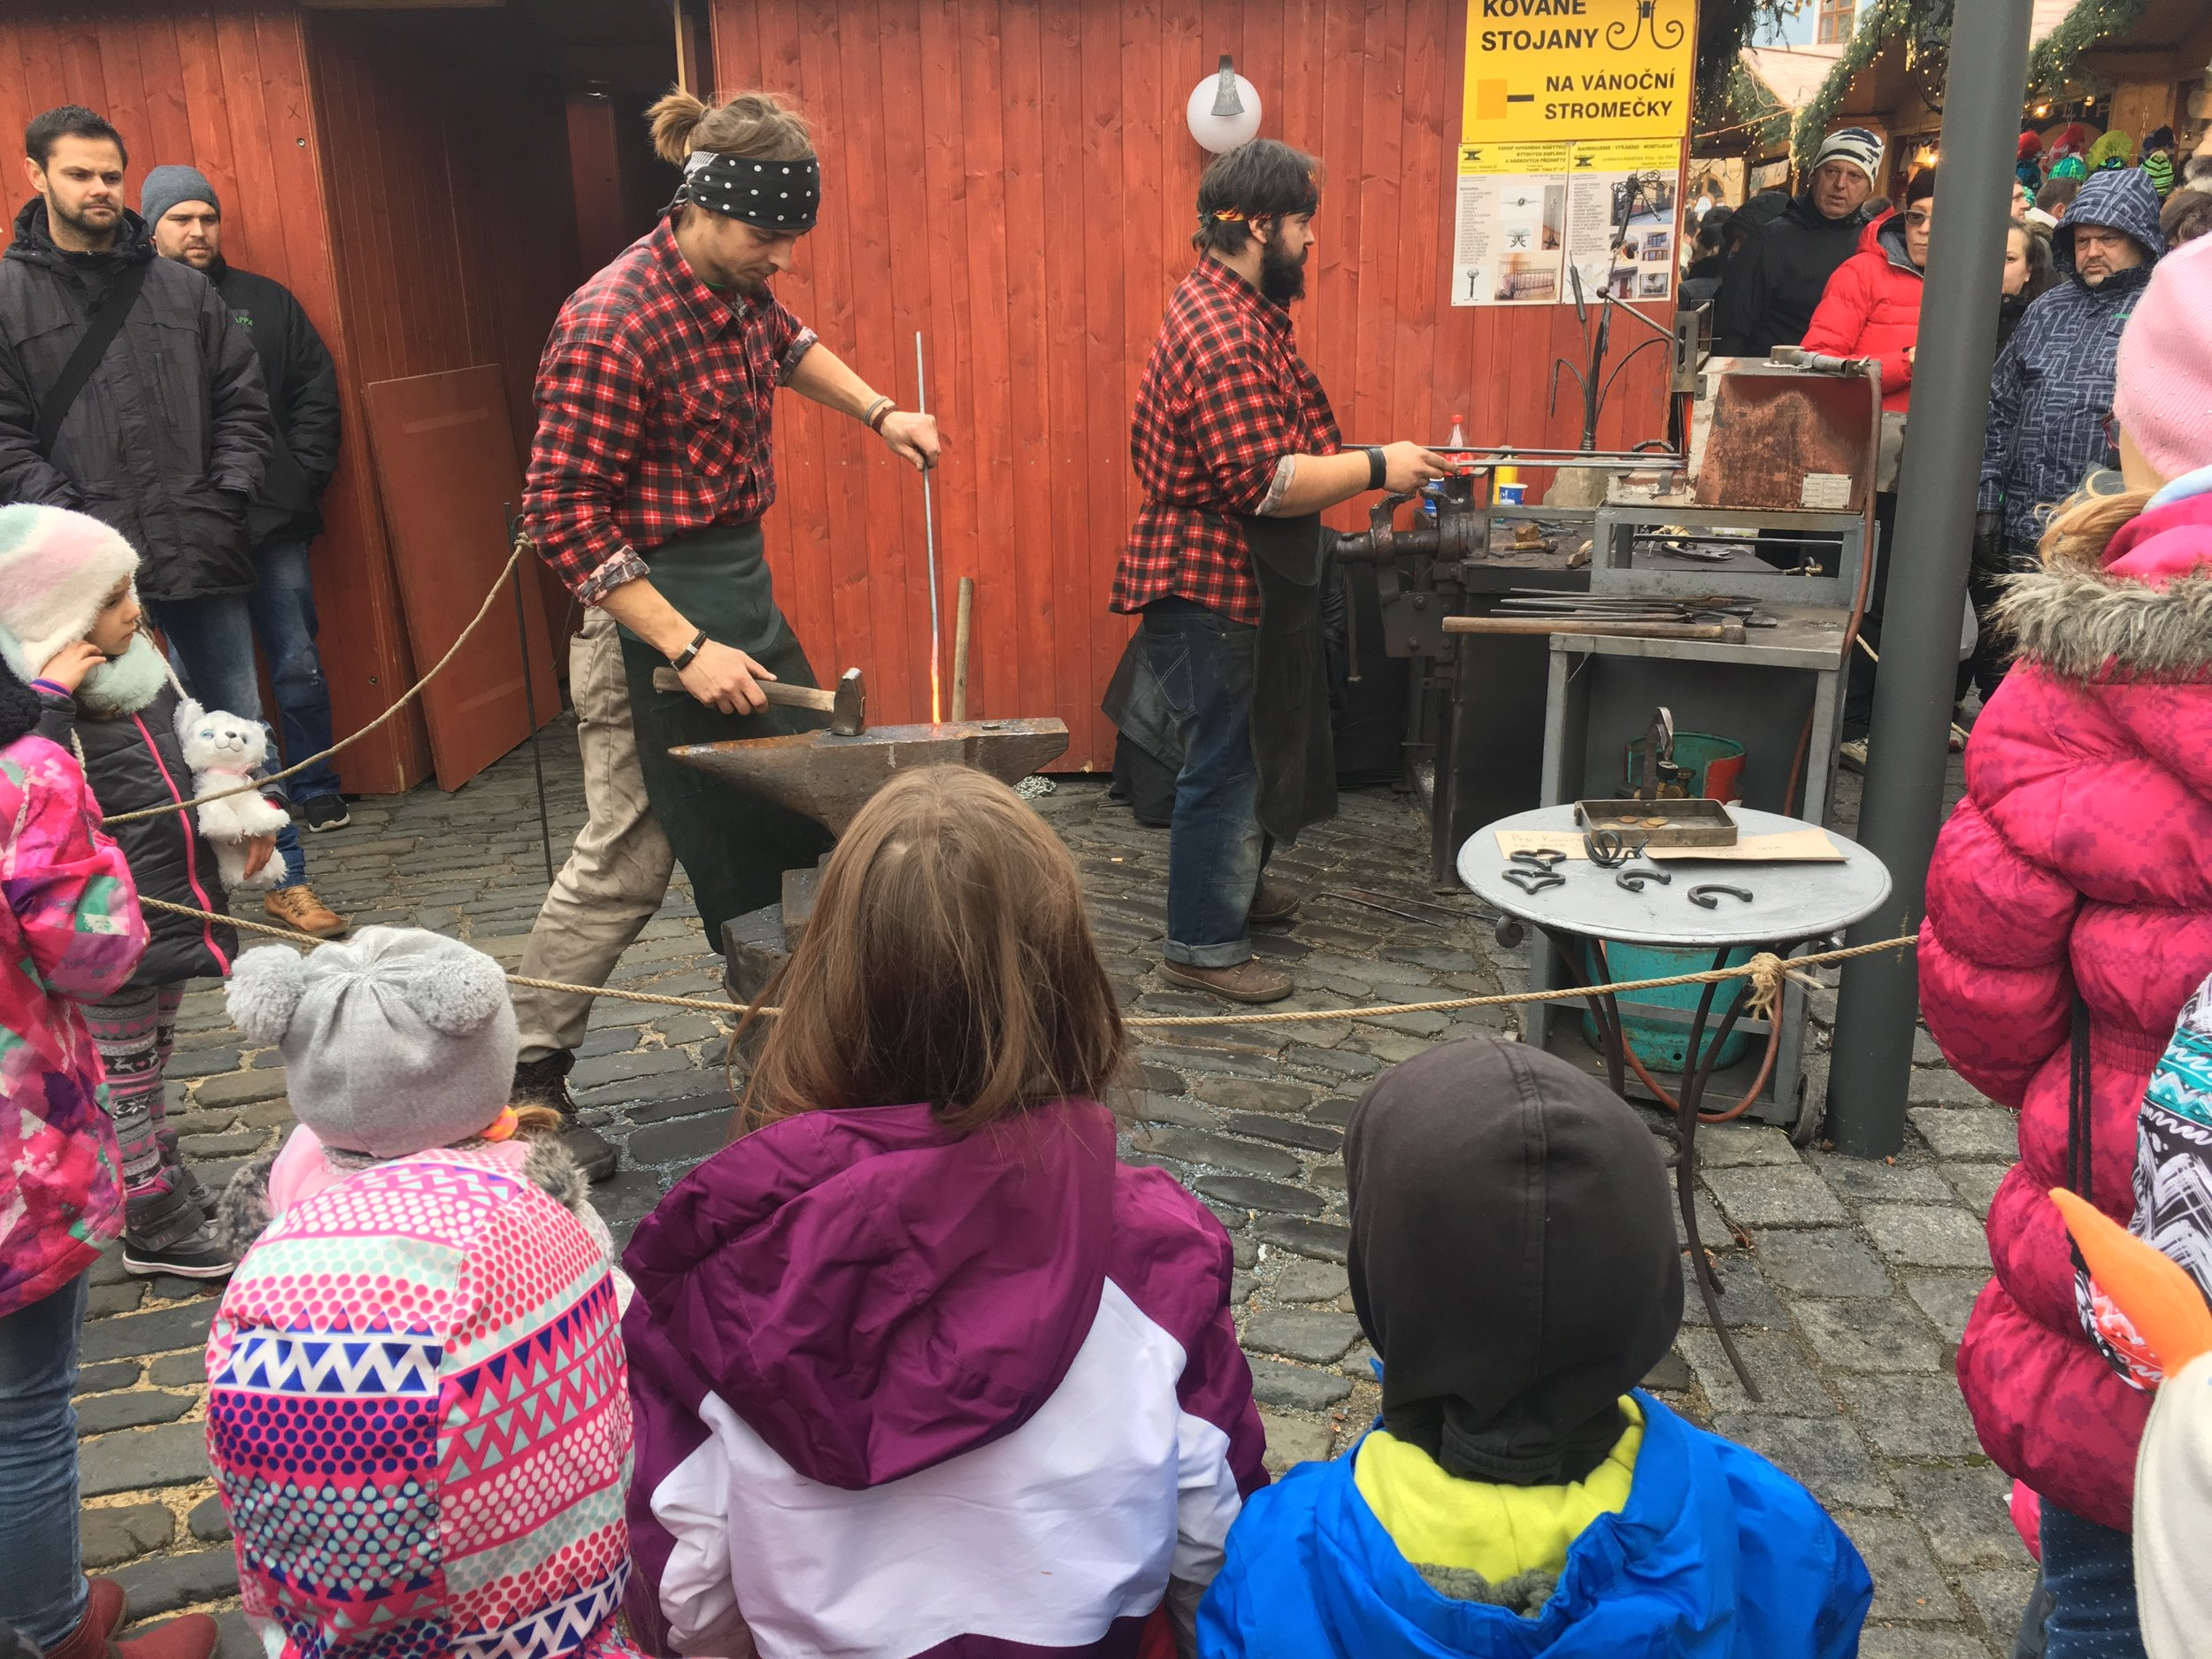 Watching a metal bending demonstration at the Christmas market.